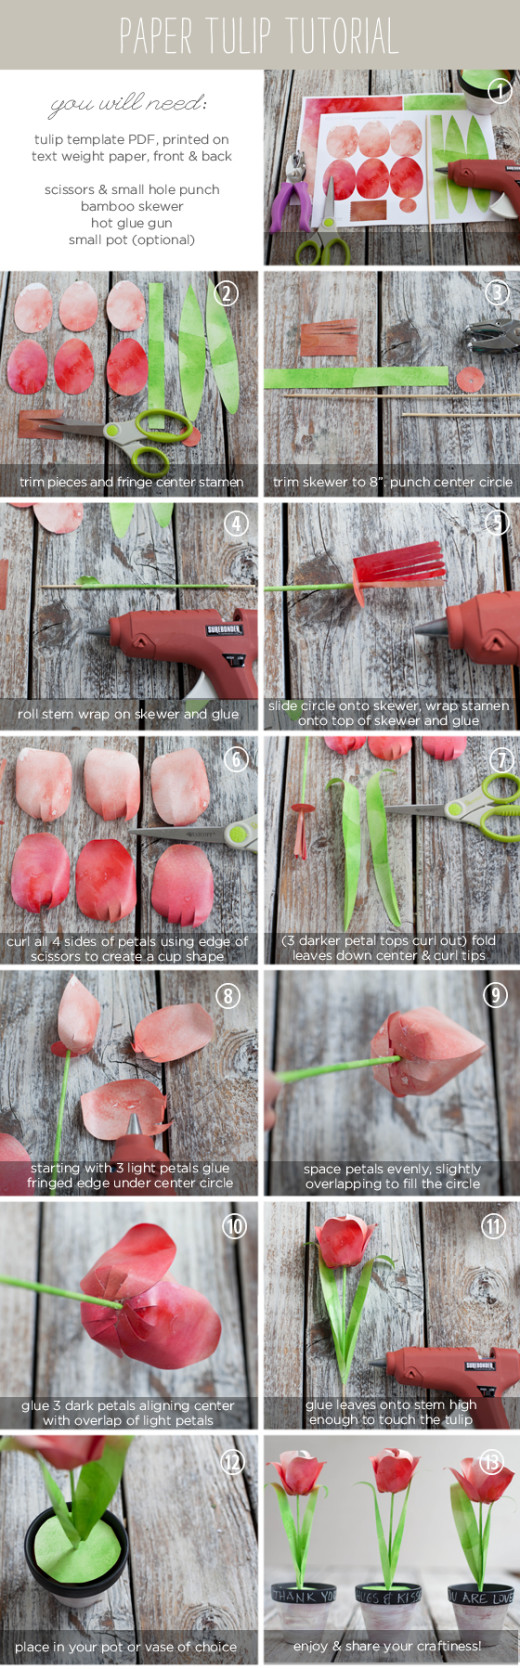 DIY Paper Tulips  | From The Elli Blog